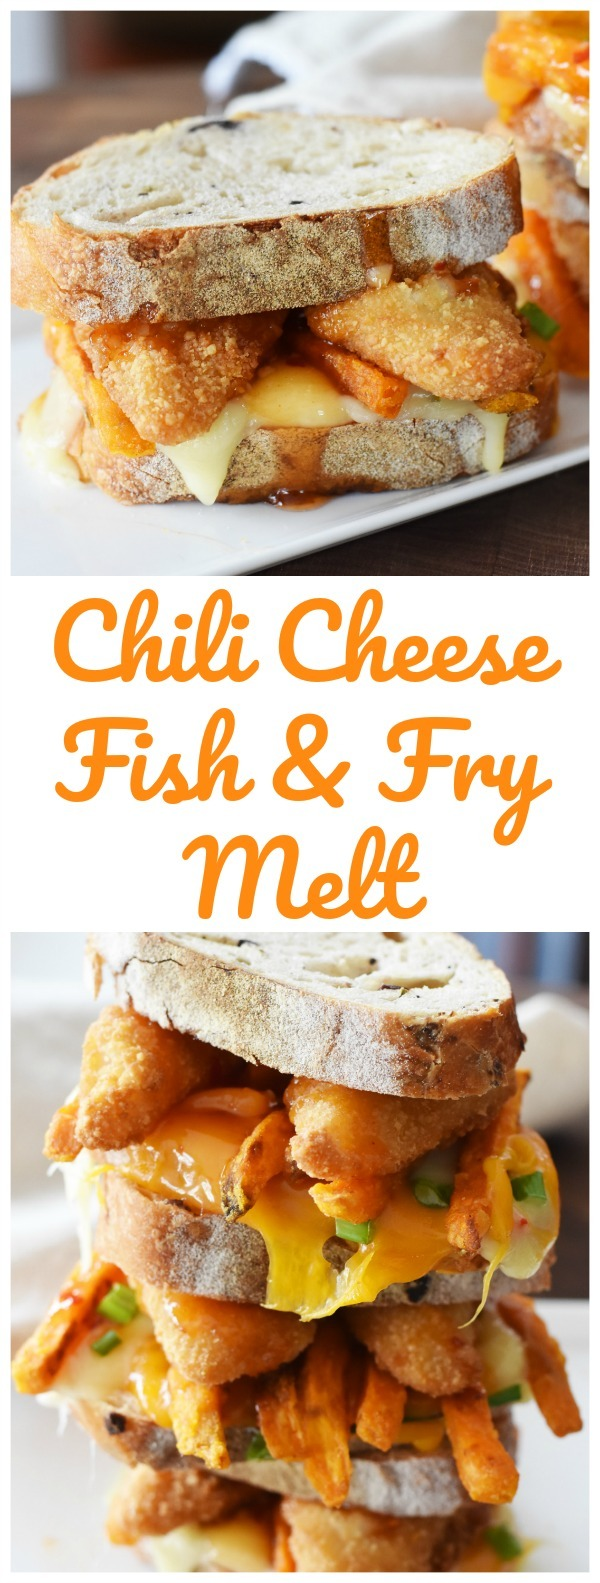 Chili Cheese Fish and Fry Melt